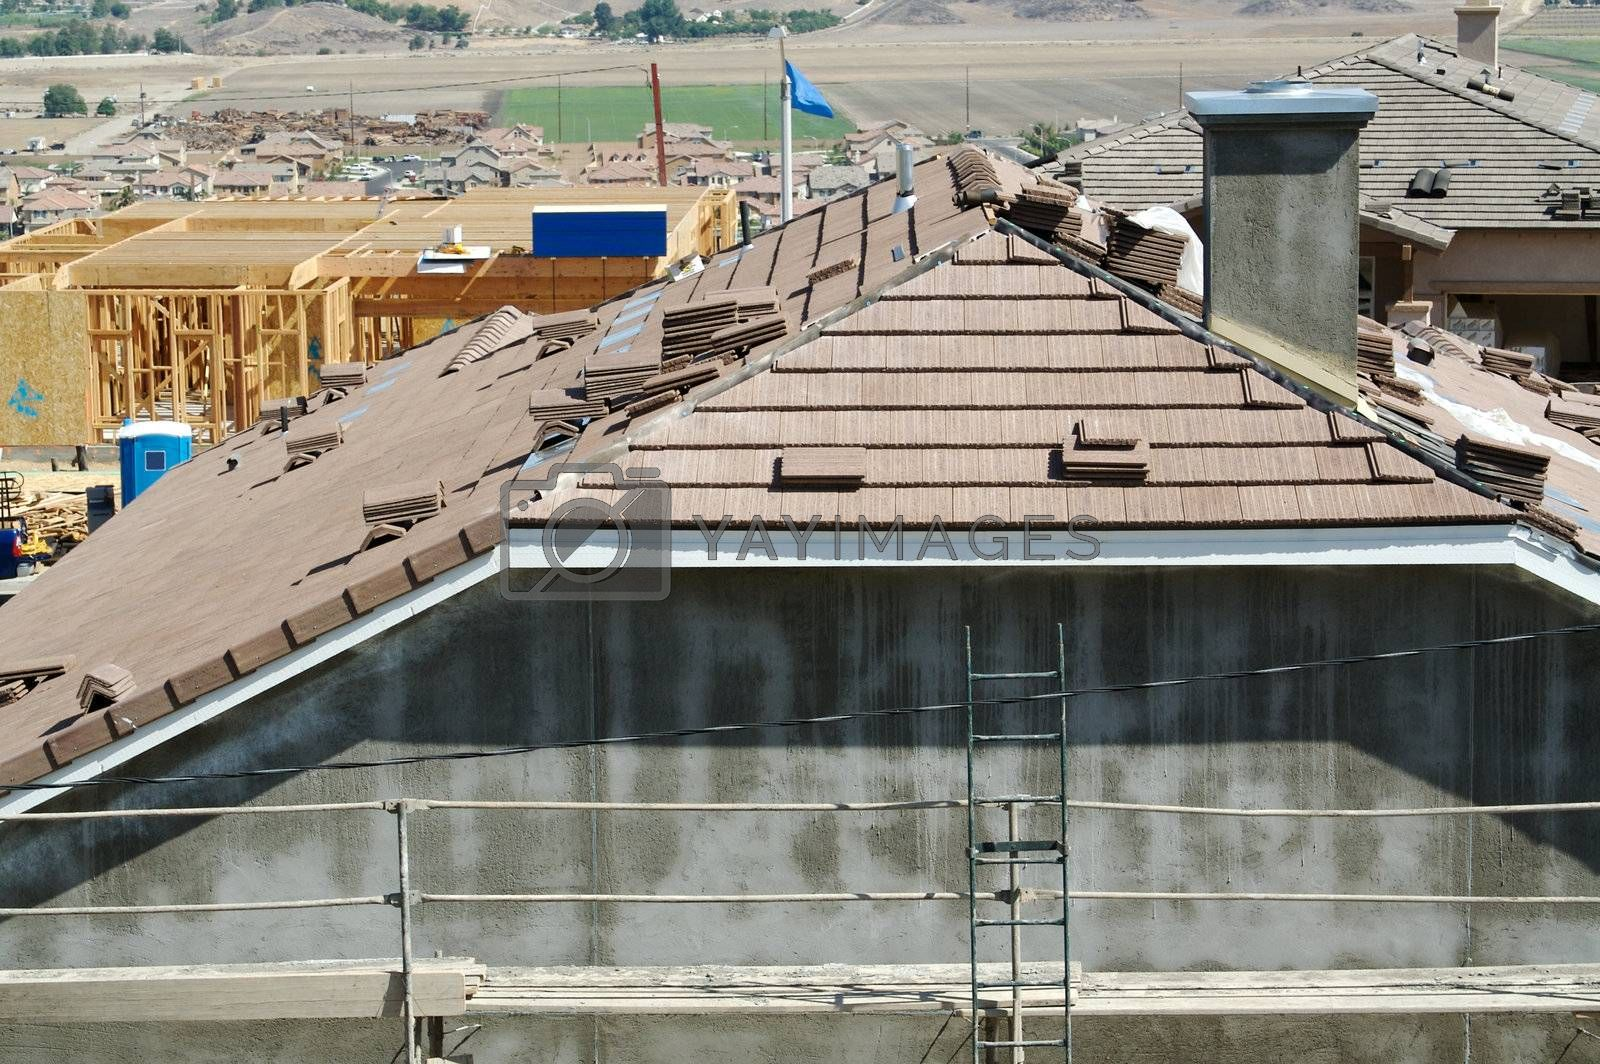 New Home Construction Site Roof and Tiles